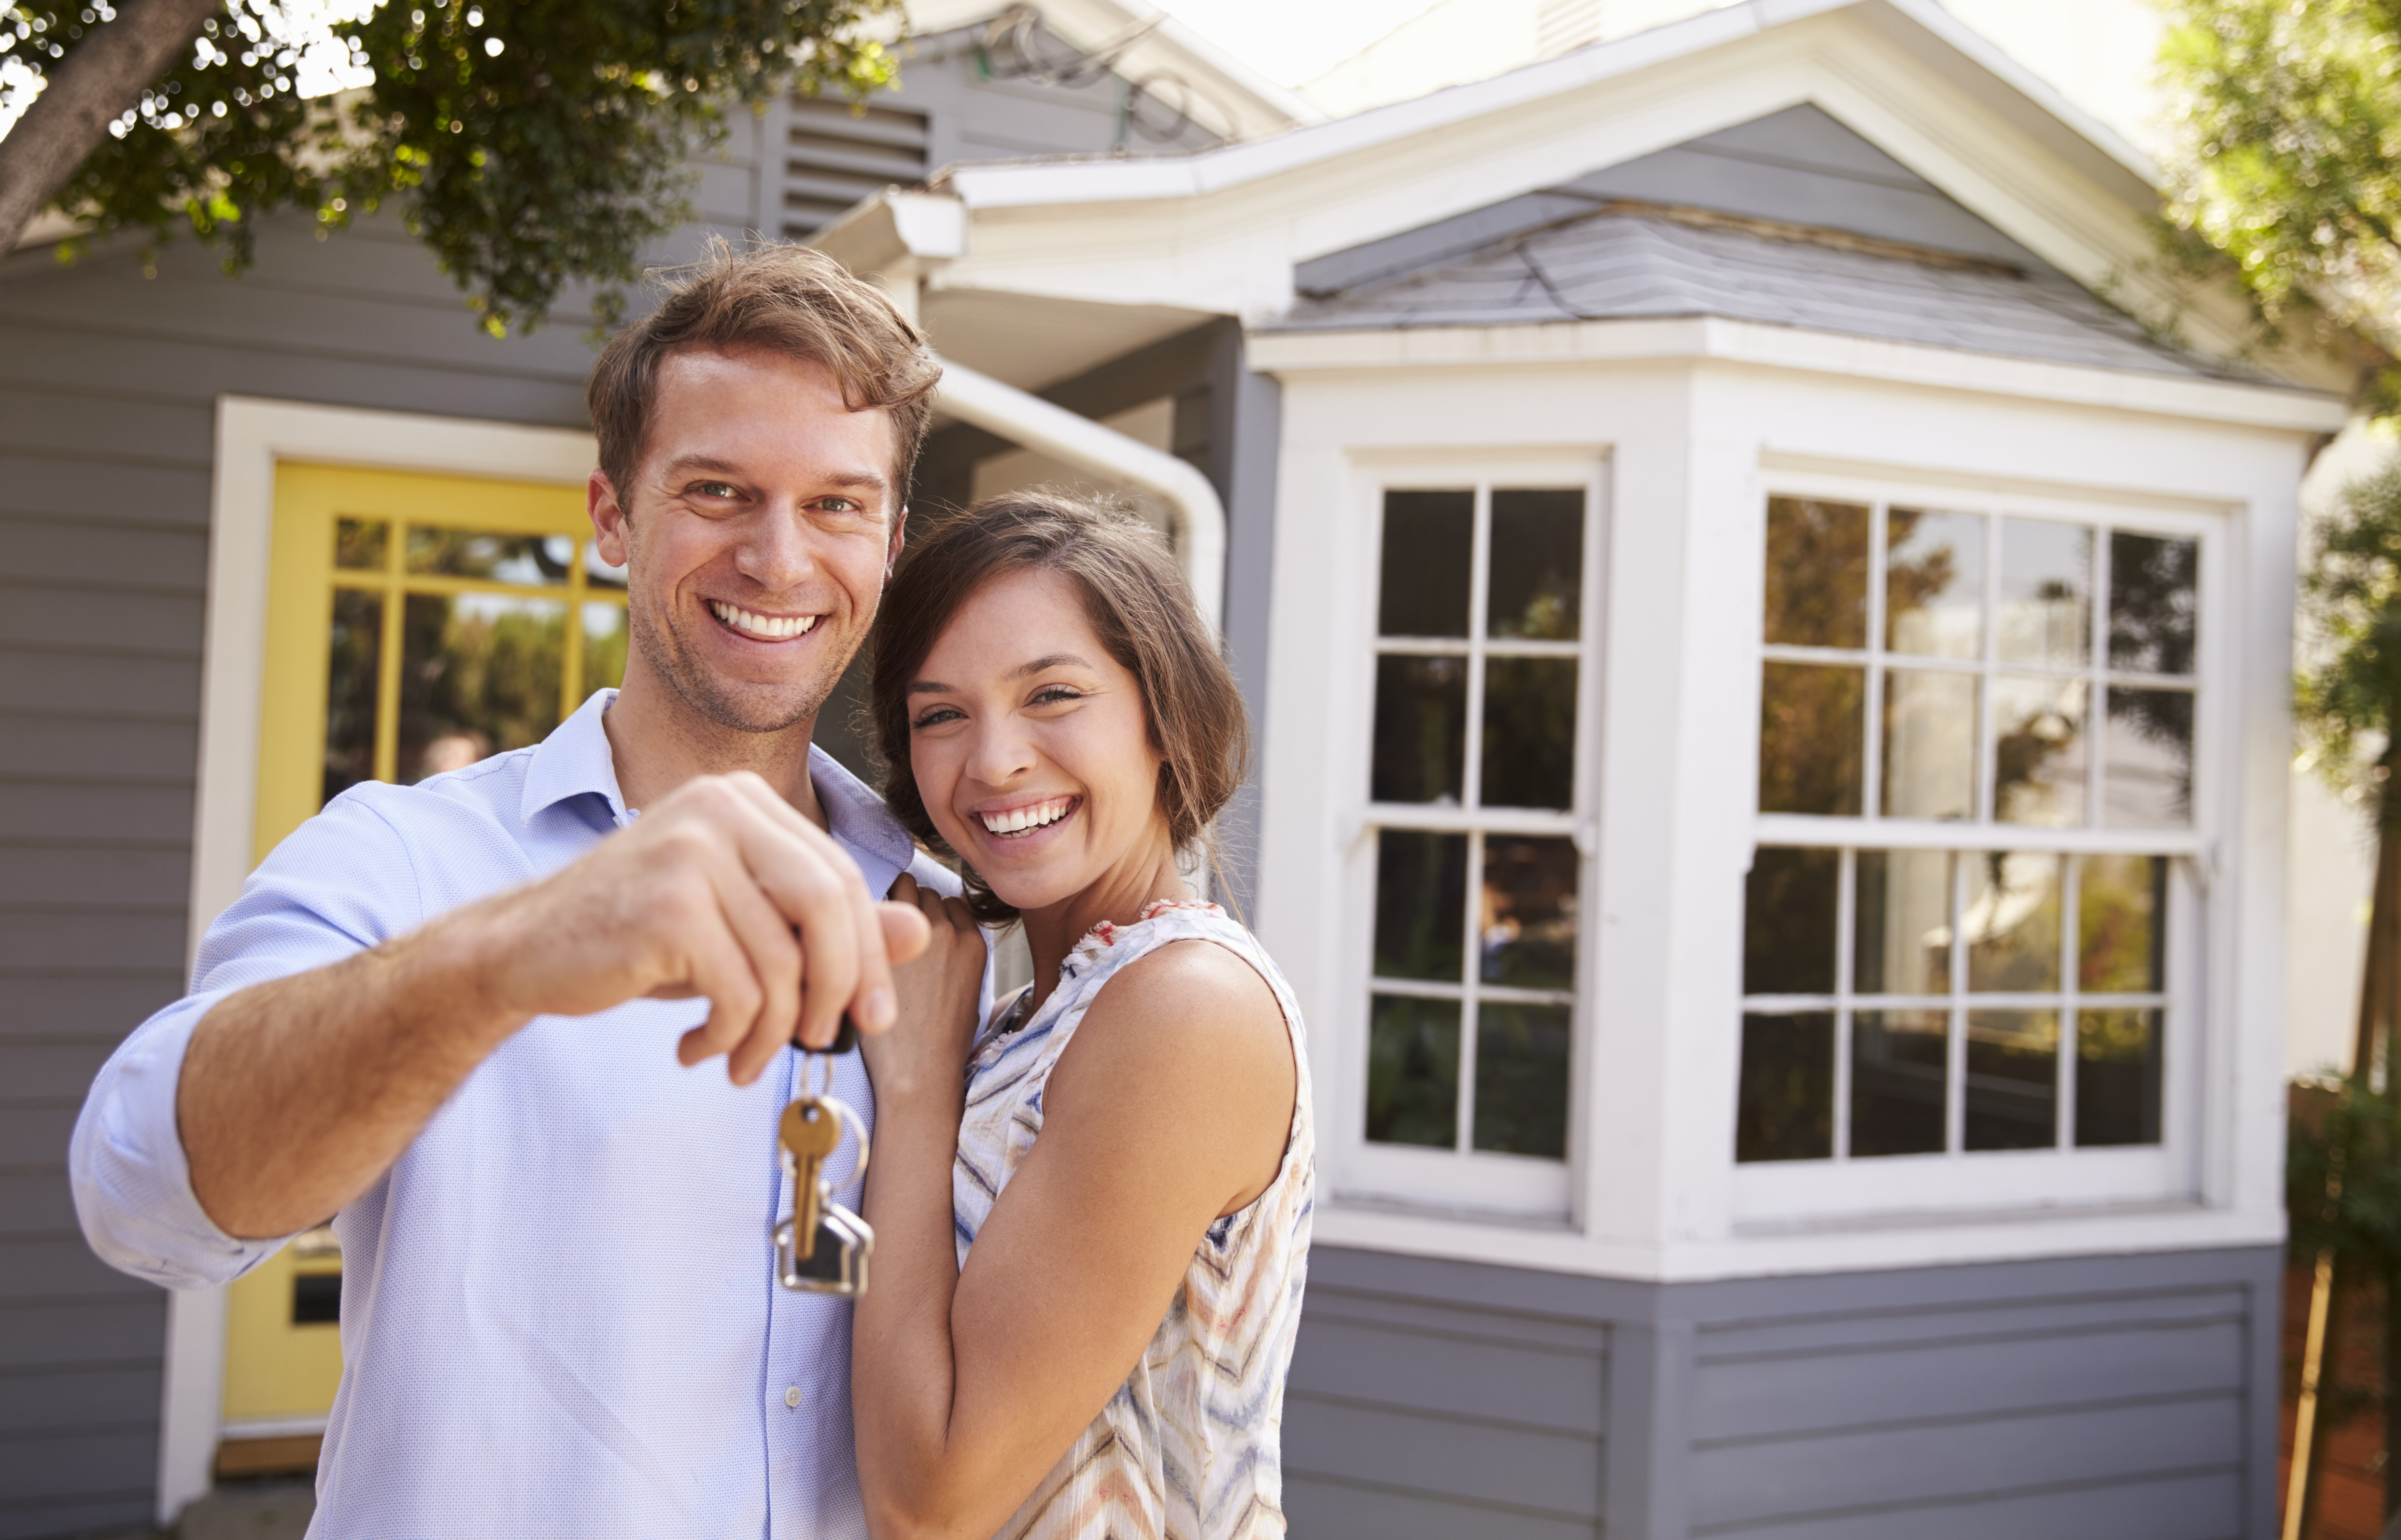 The top 5 mistakes first-time homebuyers make